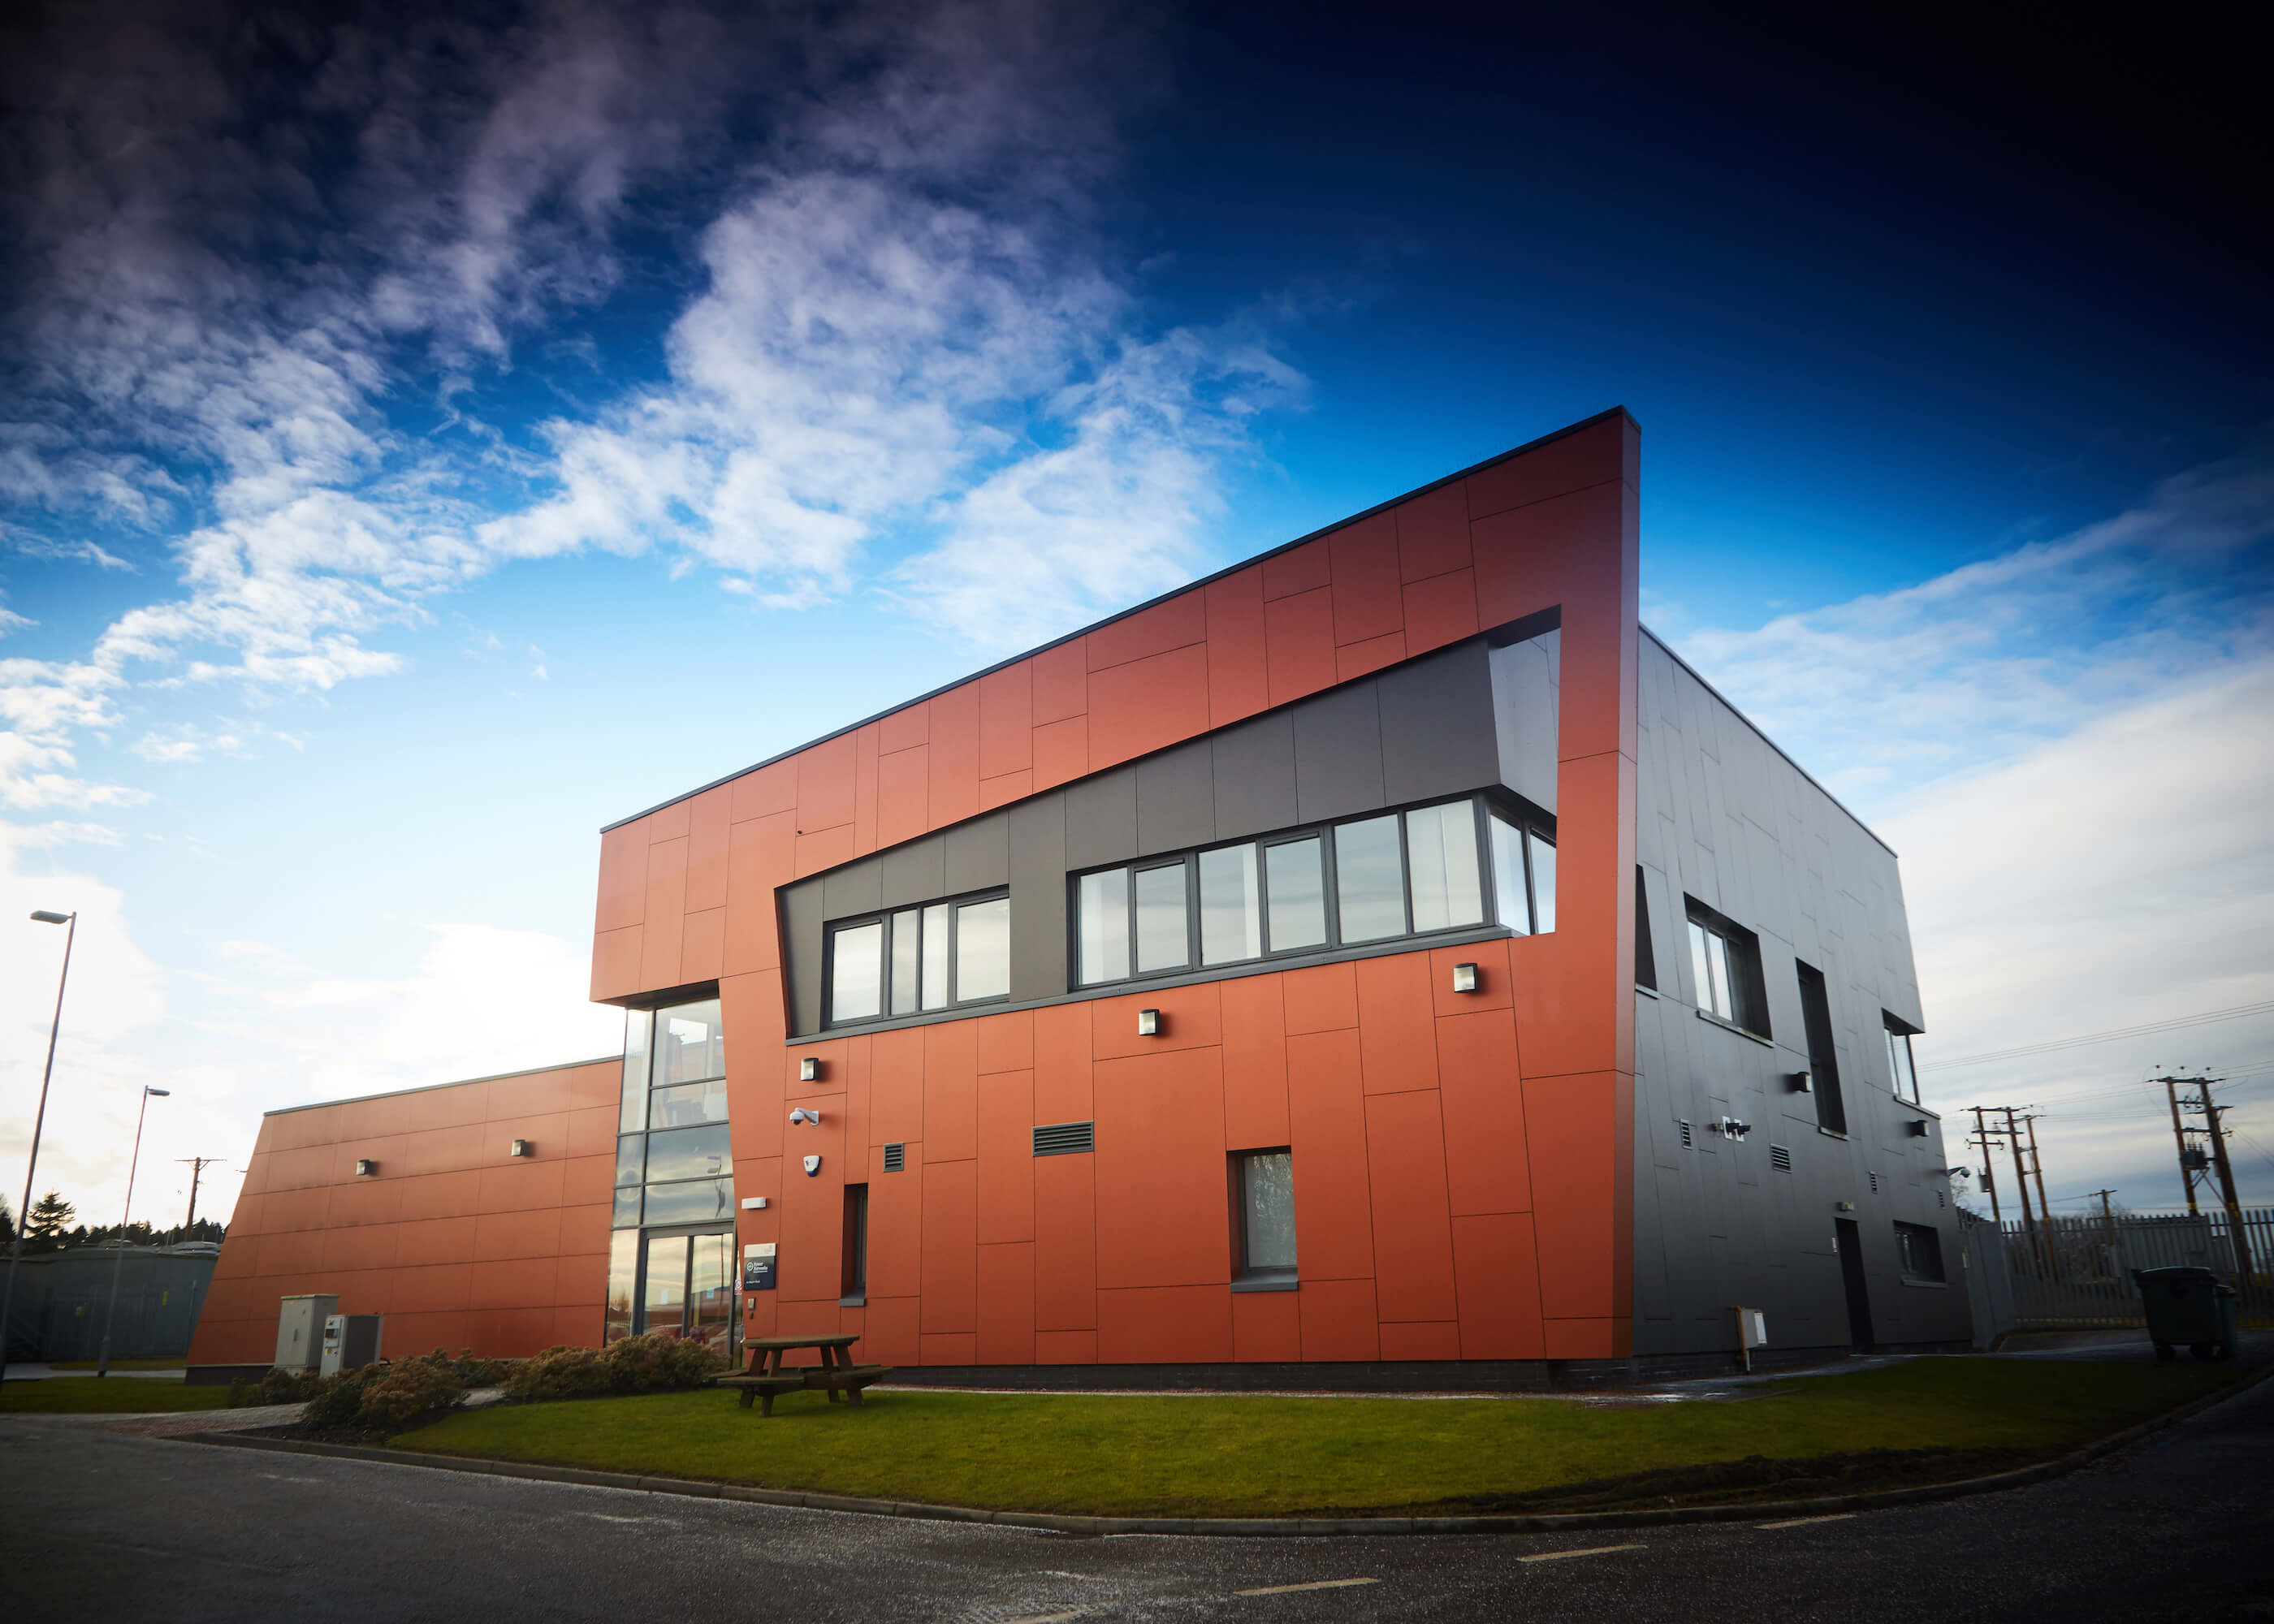 The University of Strathclyde's Department of Electronic and Electrical Engineering